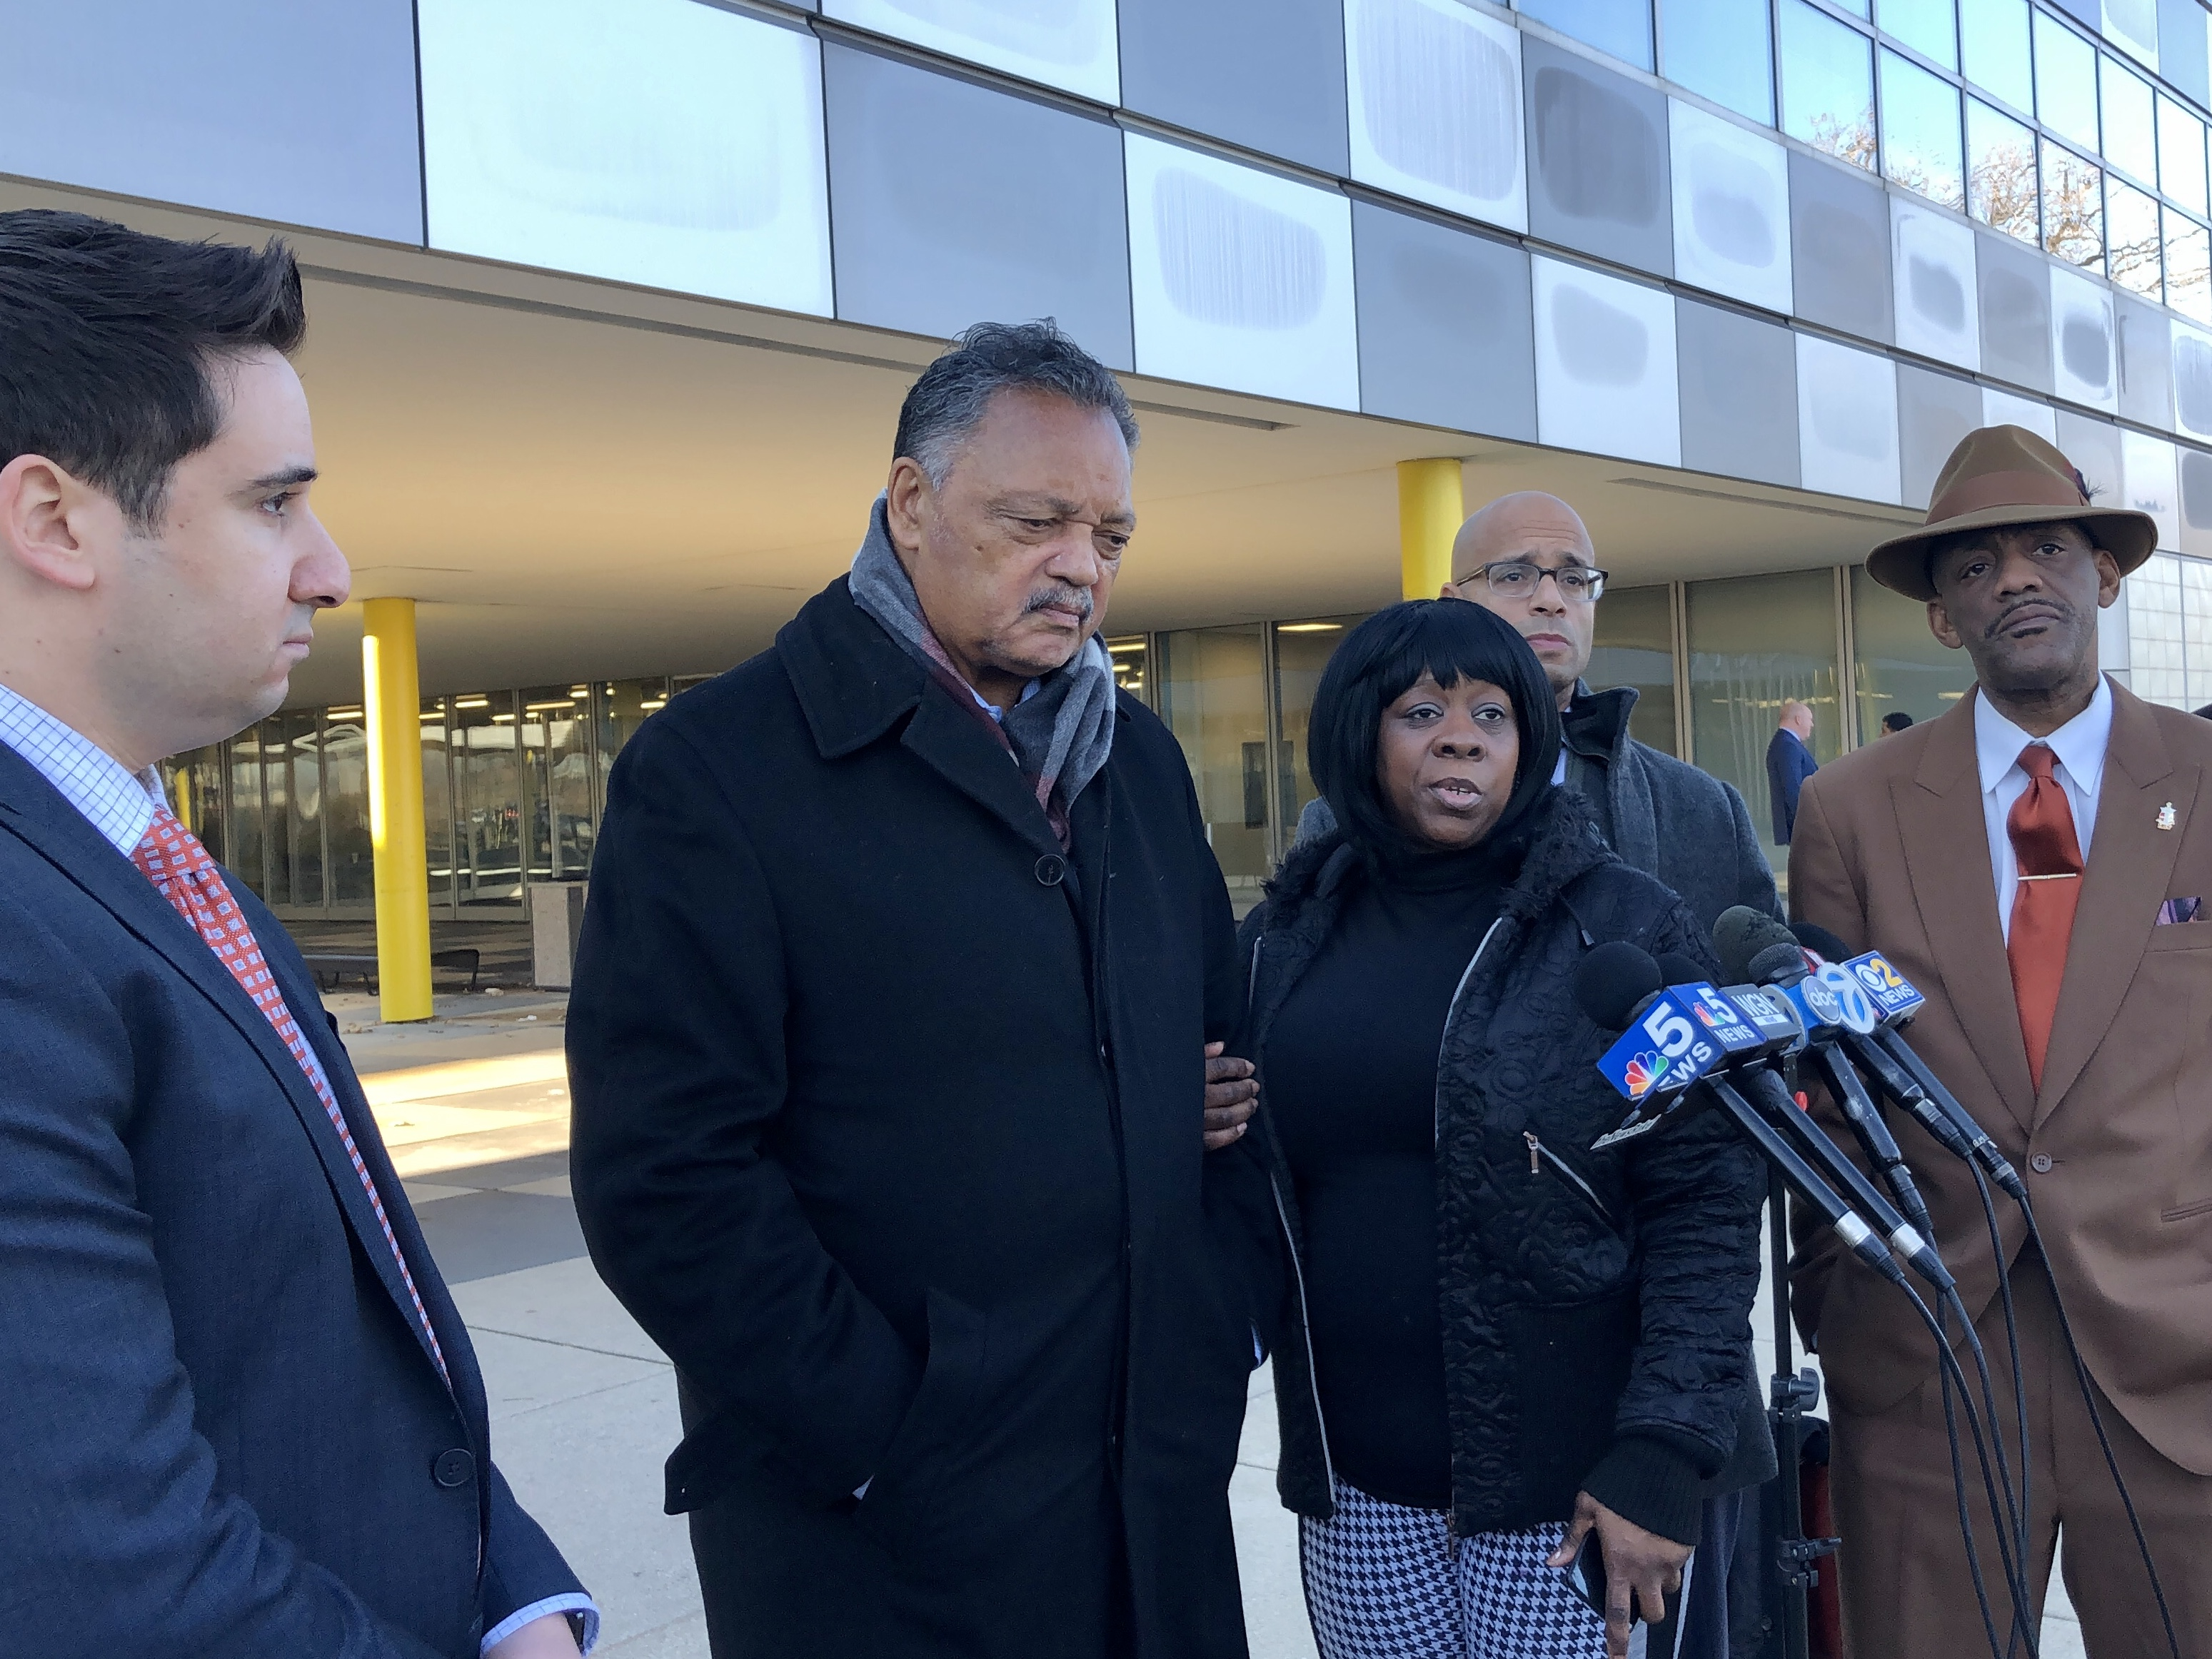 Keshia Johnson speaks to reporters after a Thursday court hearing for her son Bernard Kersh. Johnson was joined by her son's attorneys, Andrew M. Stroth and Sami Azhari, as well as the Rev. Jesse Jackson and community activist Eric Russell.